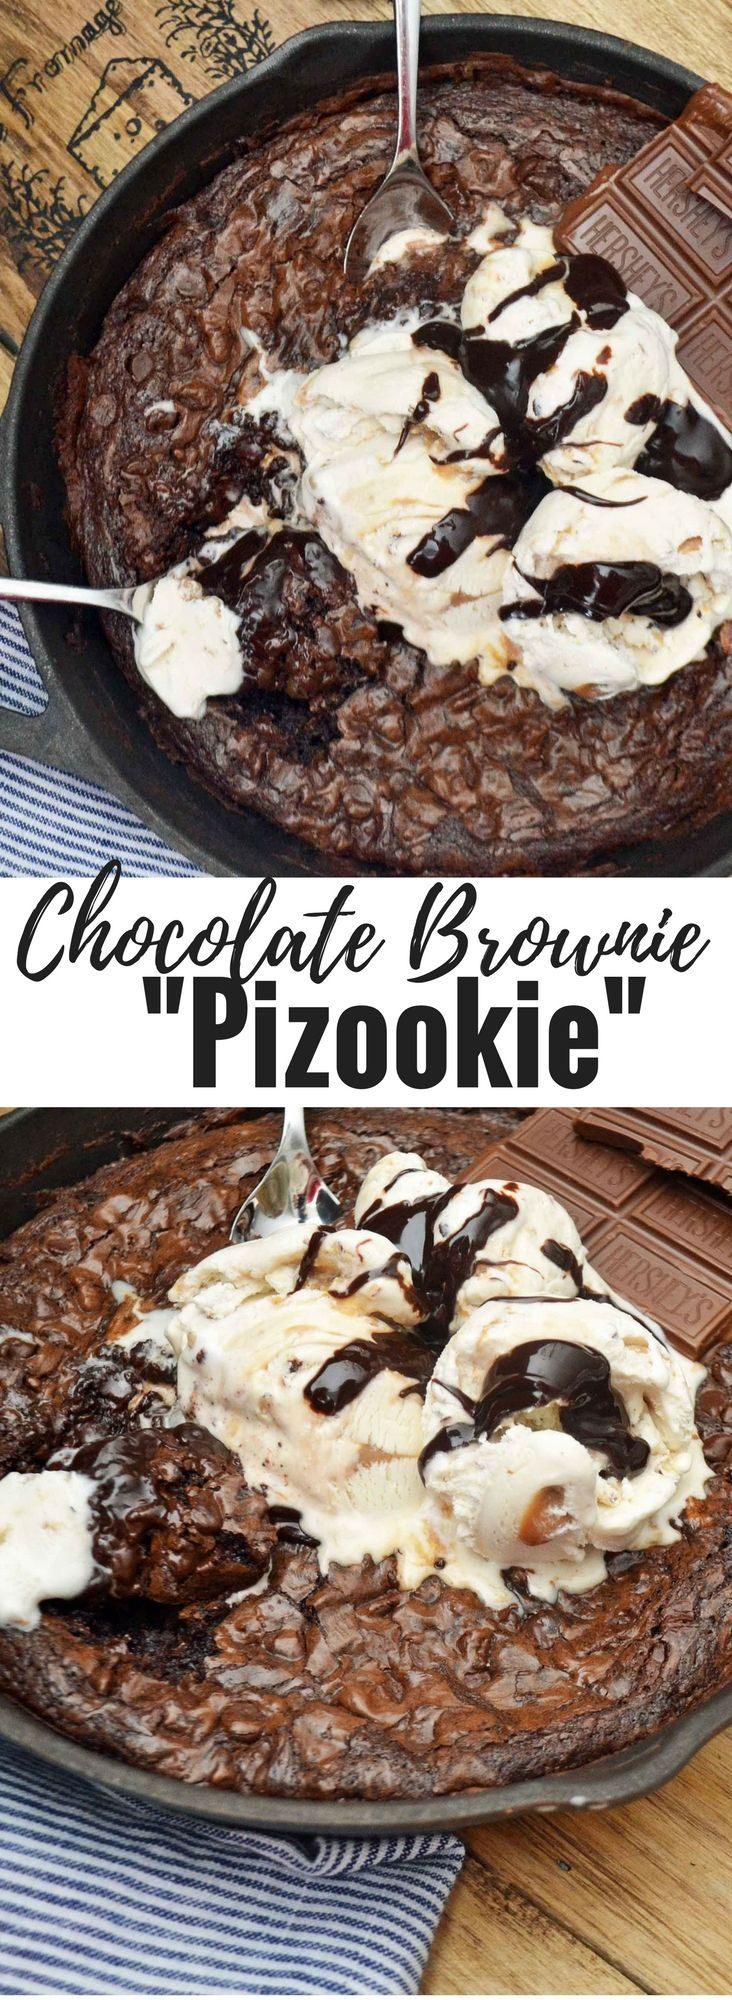 The Popular Pizookie dessert made with a decadent chocolate brownie and topped with vanilla ice cream and hot fudge. It's a chocolate lover's dream.